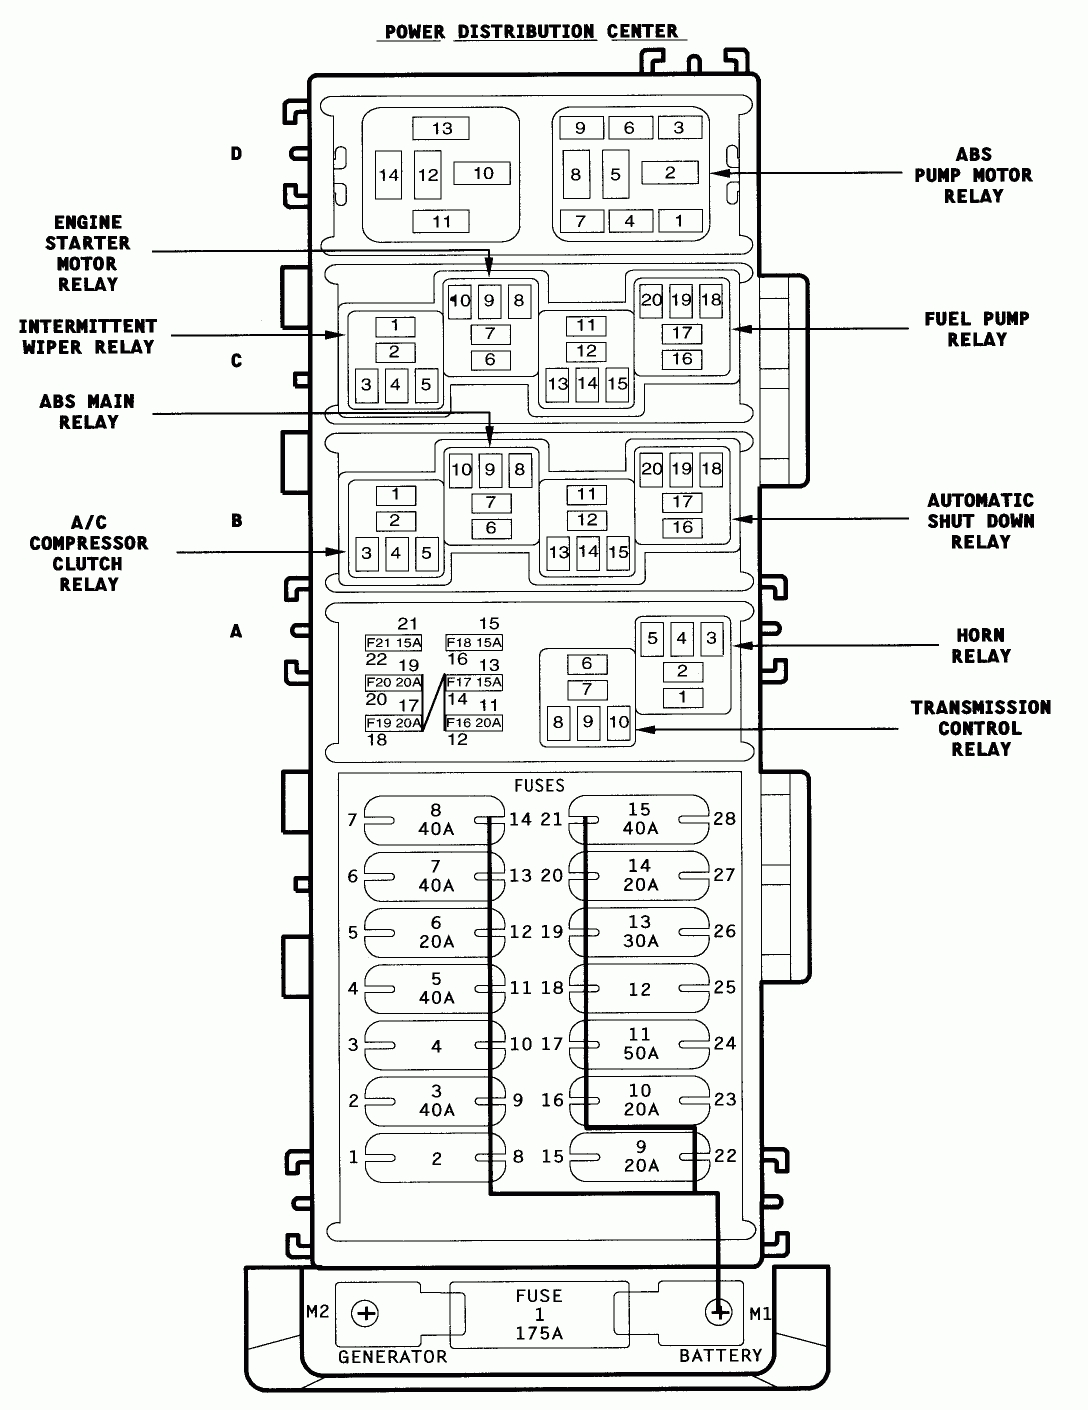 Enjoyable 1993 Jeep Cherokee Fuse Diagram Wiring Diagram Pdf Wiring Cloud Hisonepsysticxongrecoveryedborg